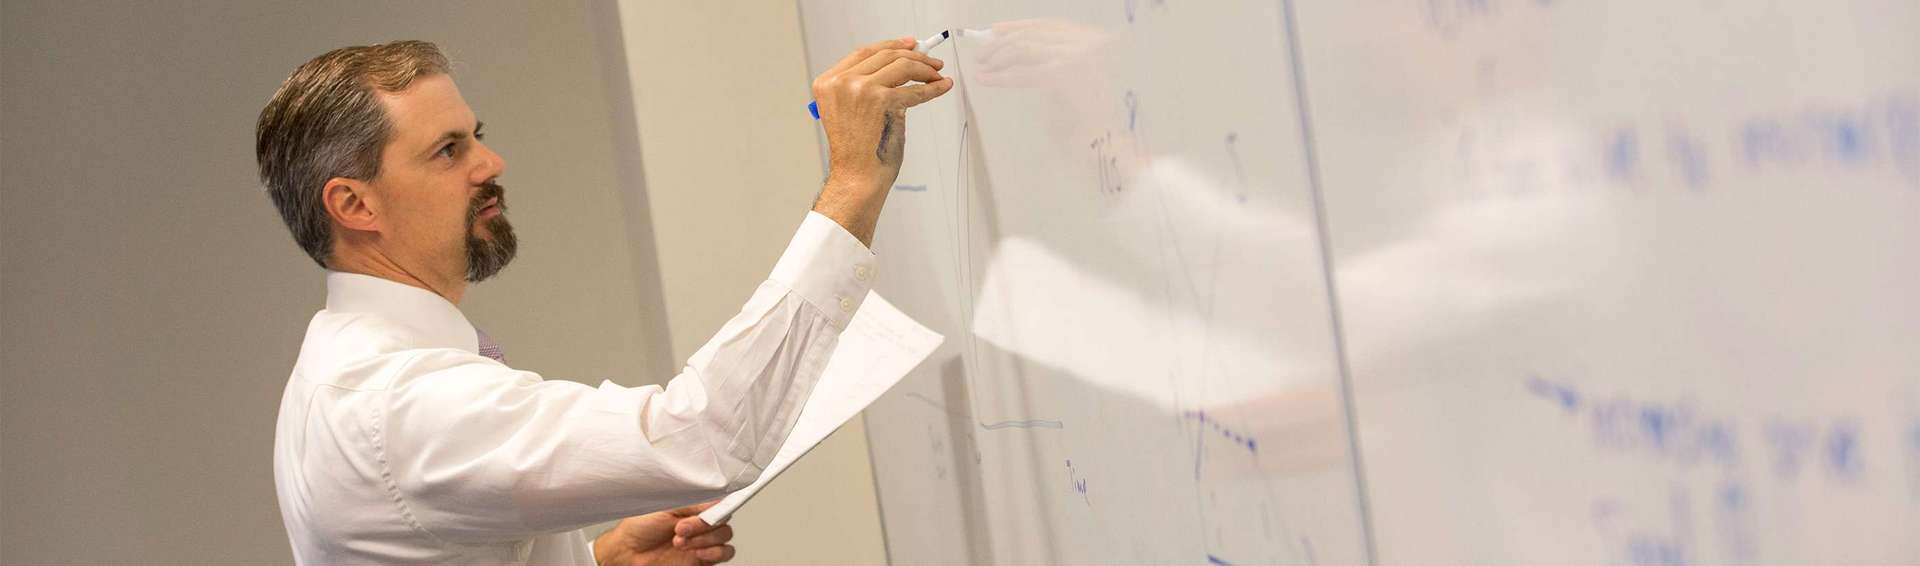 Professor writing on a white board.